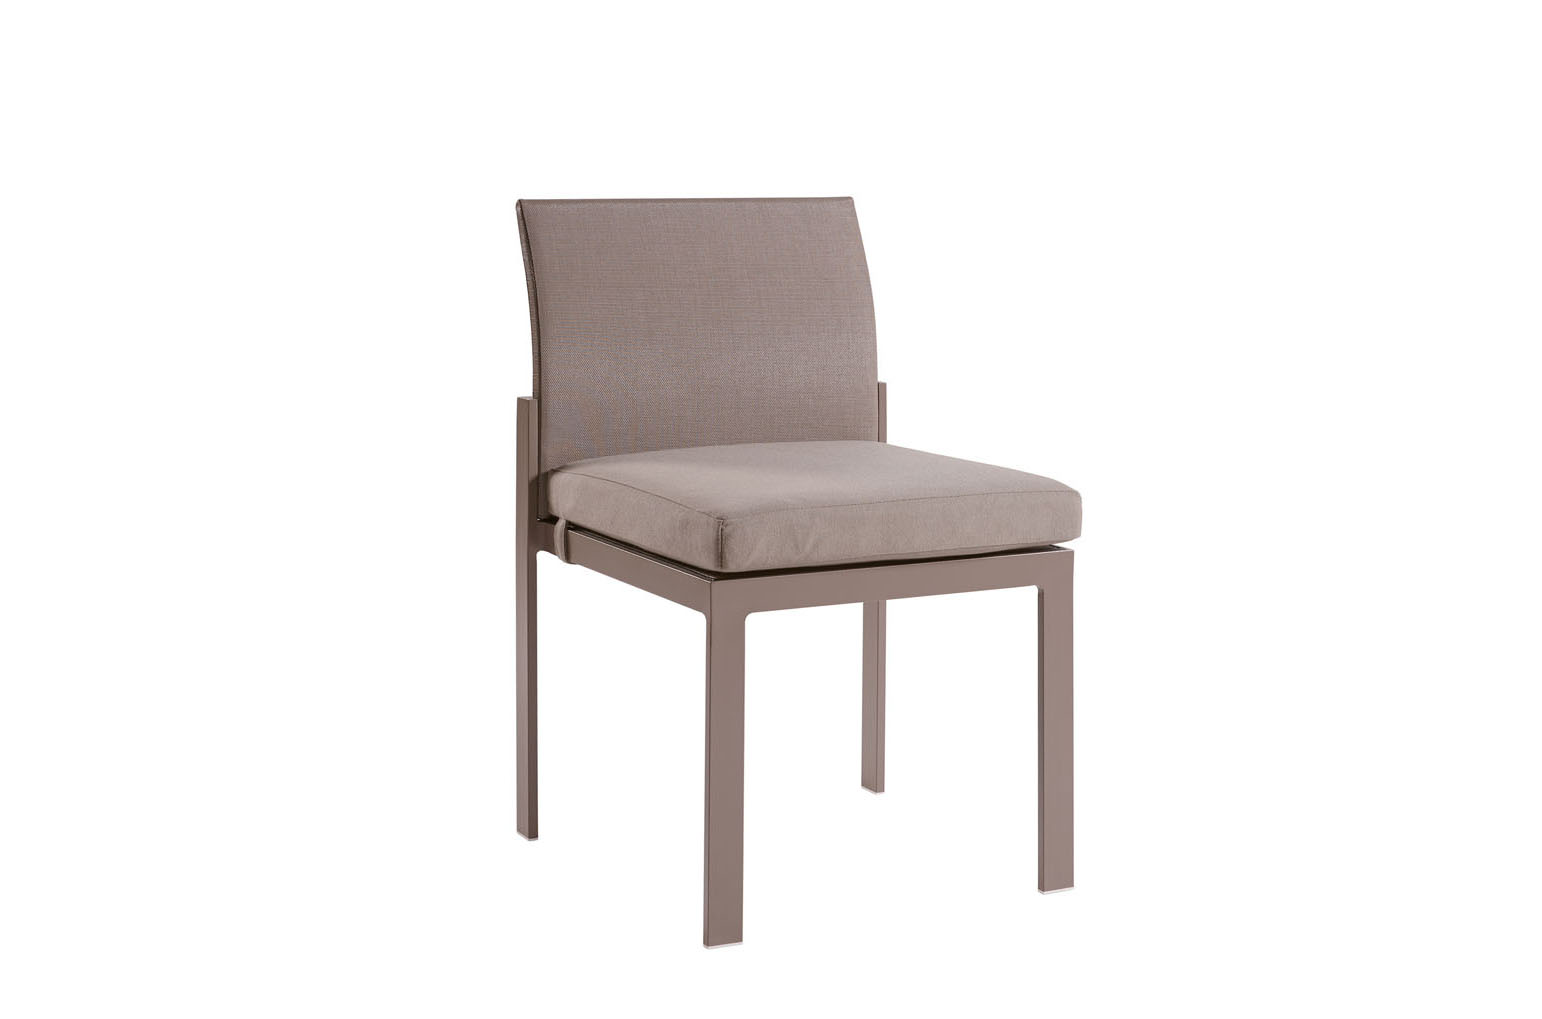 Sifas KOMFY Dining Chair